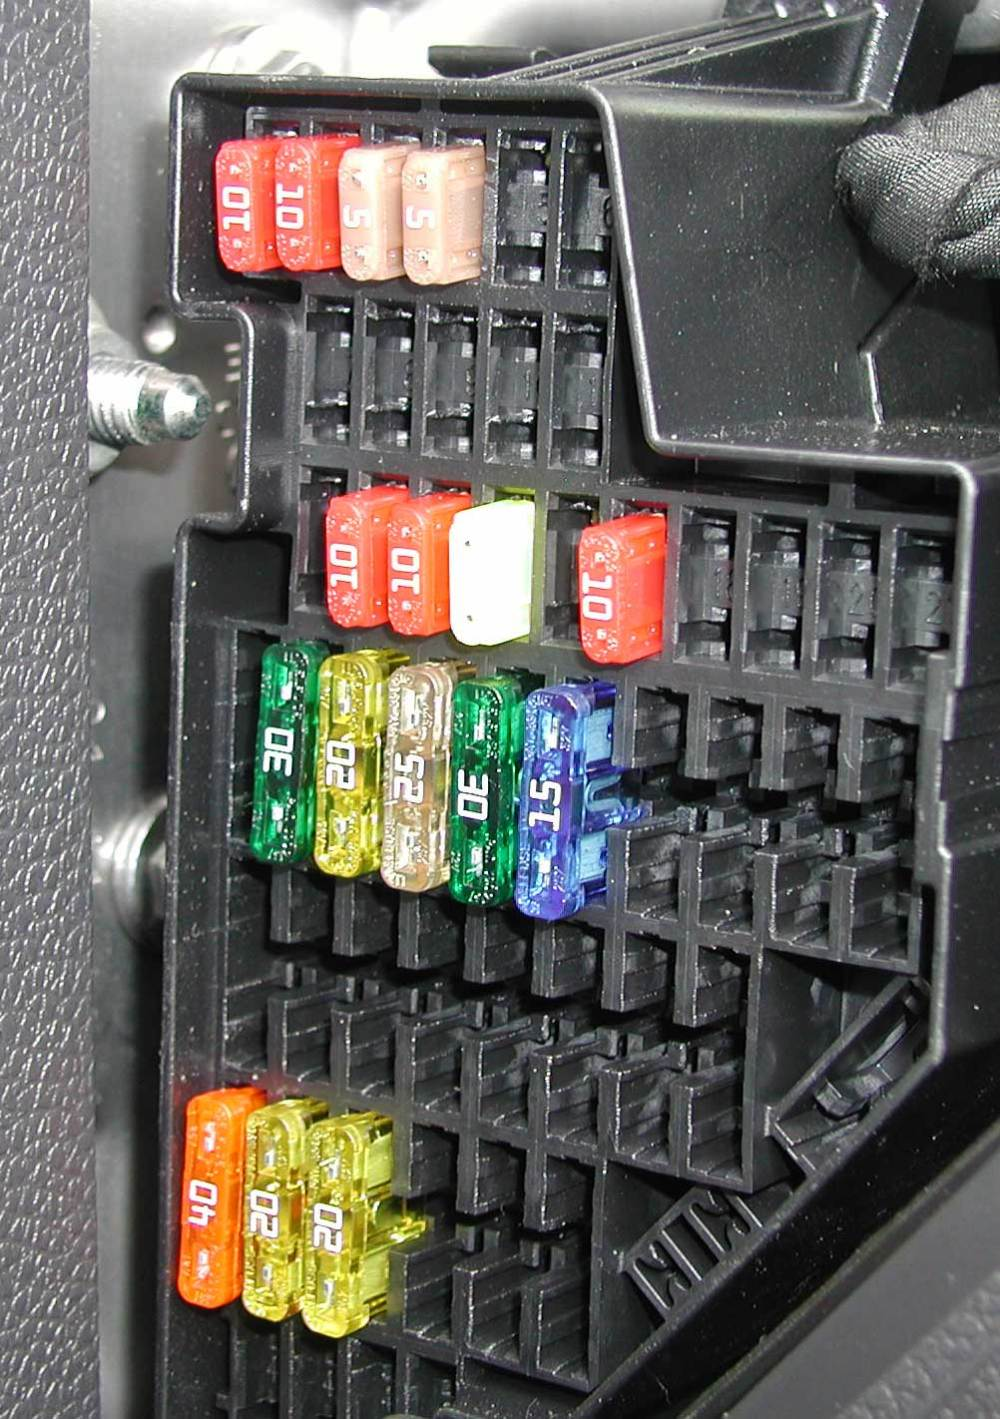 medium resolution of 2011 golf tdi fuse box picture please tdiclub forums 2012 jeep wrangler fuse box 2012 vw golf fuse box